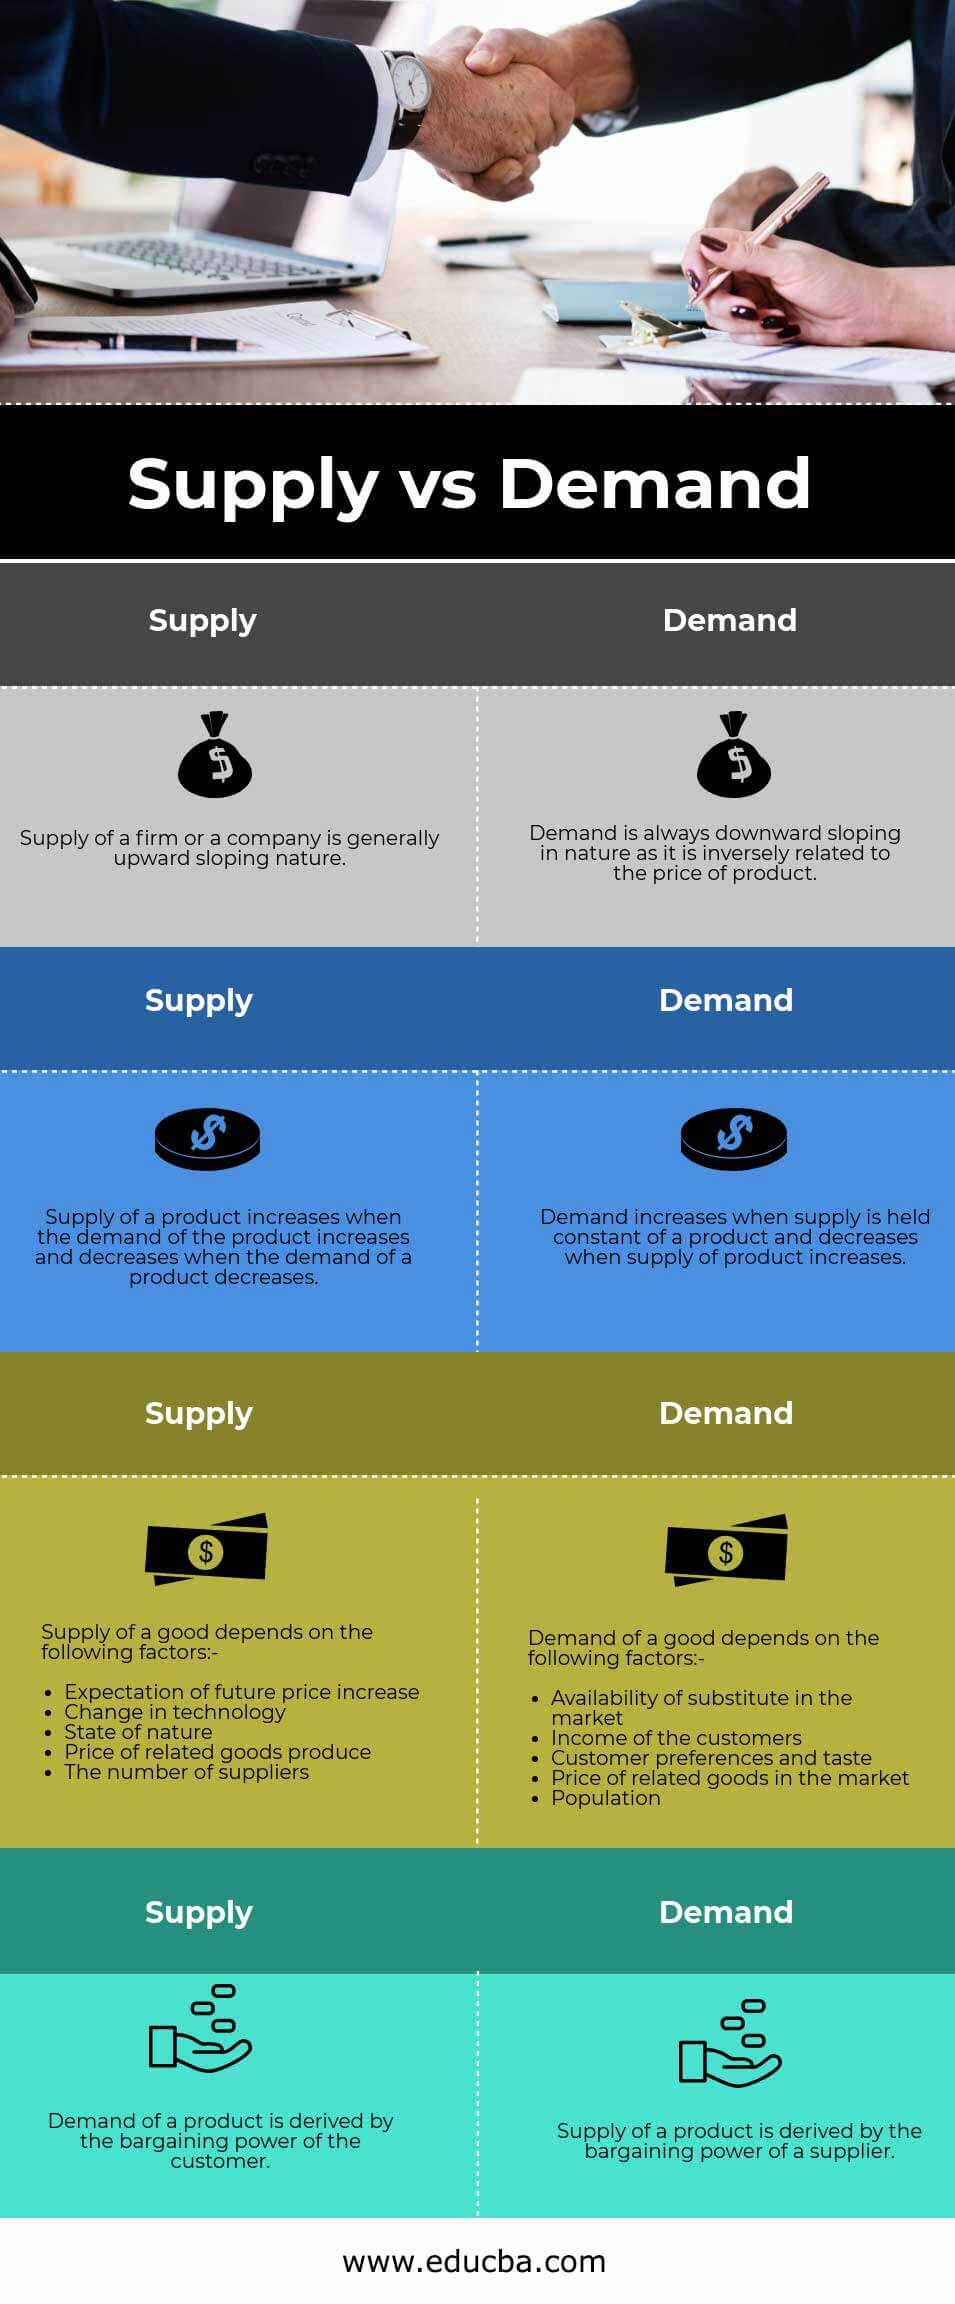 Supply vs Demand info